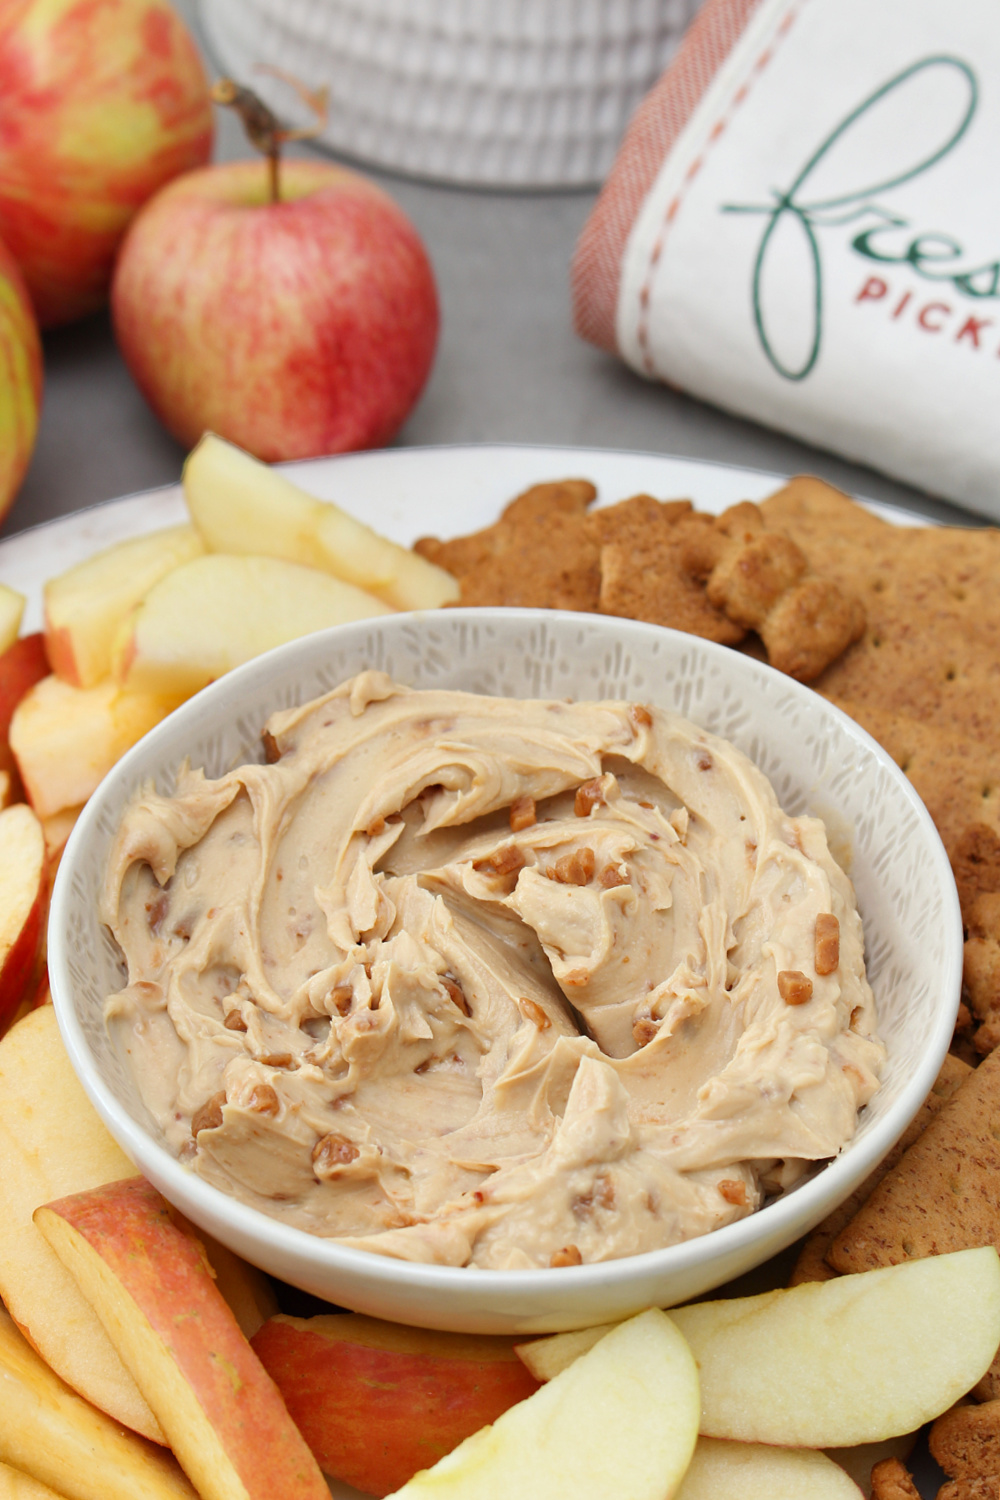 Cream cheese apple dip with apples and graham crackers.